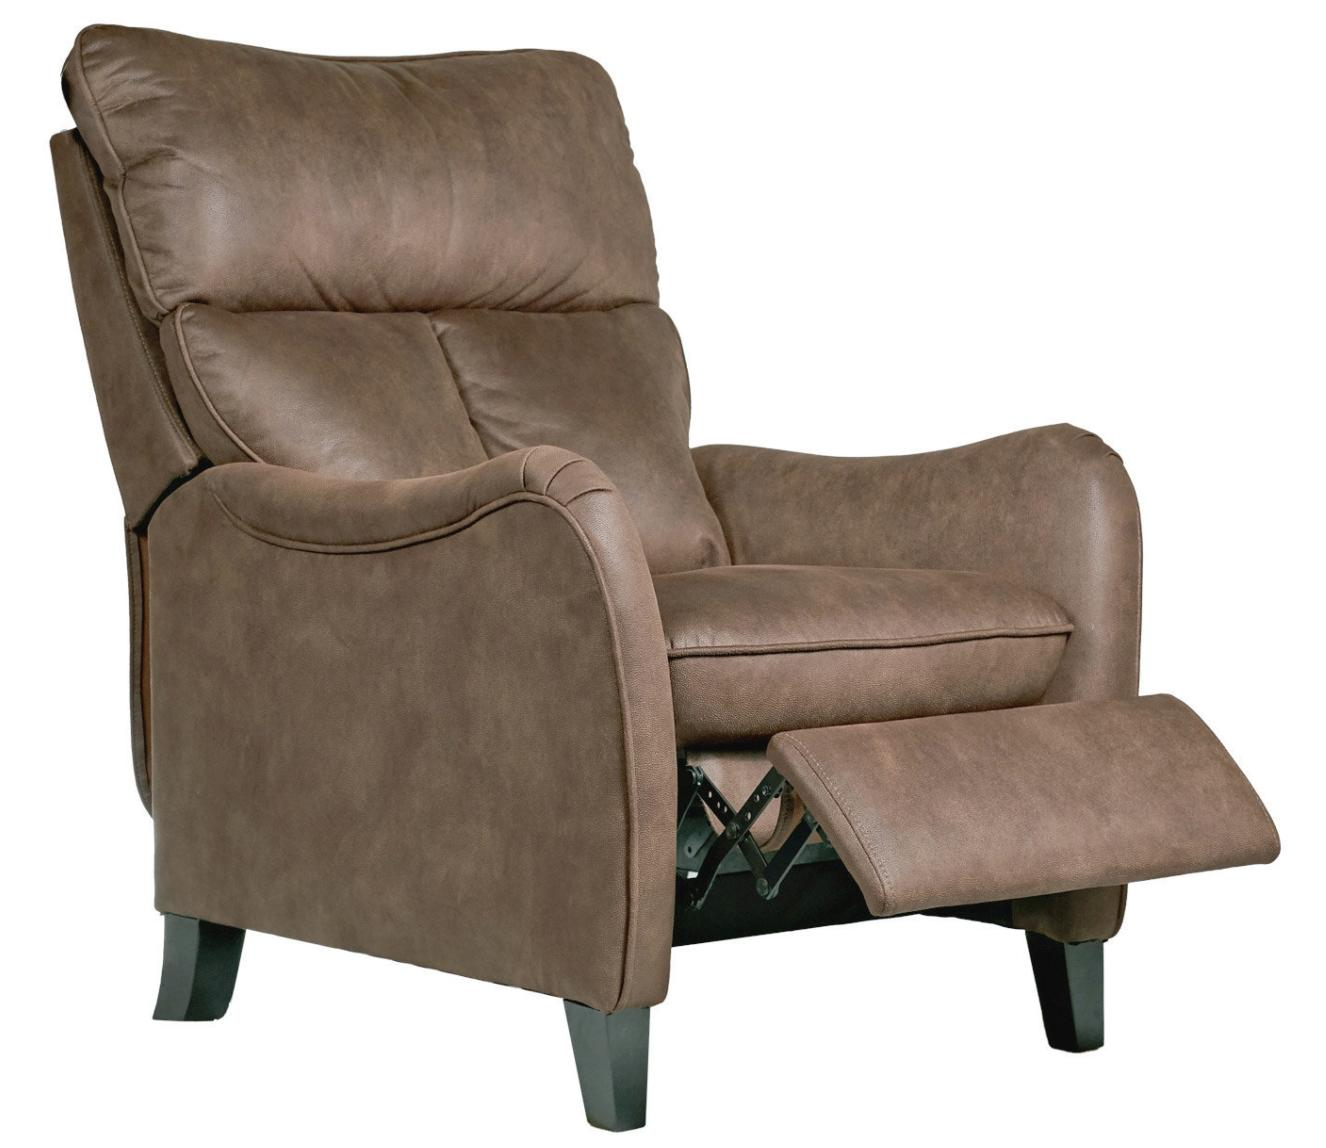 fauteuil de relaxation manuel microfibre marron clair mika. Black Bedroom Furniture Sets. Home Design Ideas